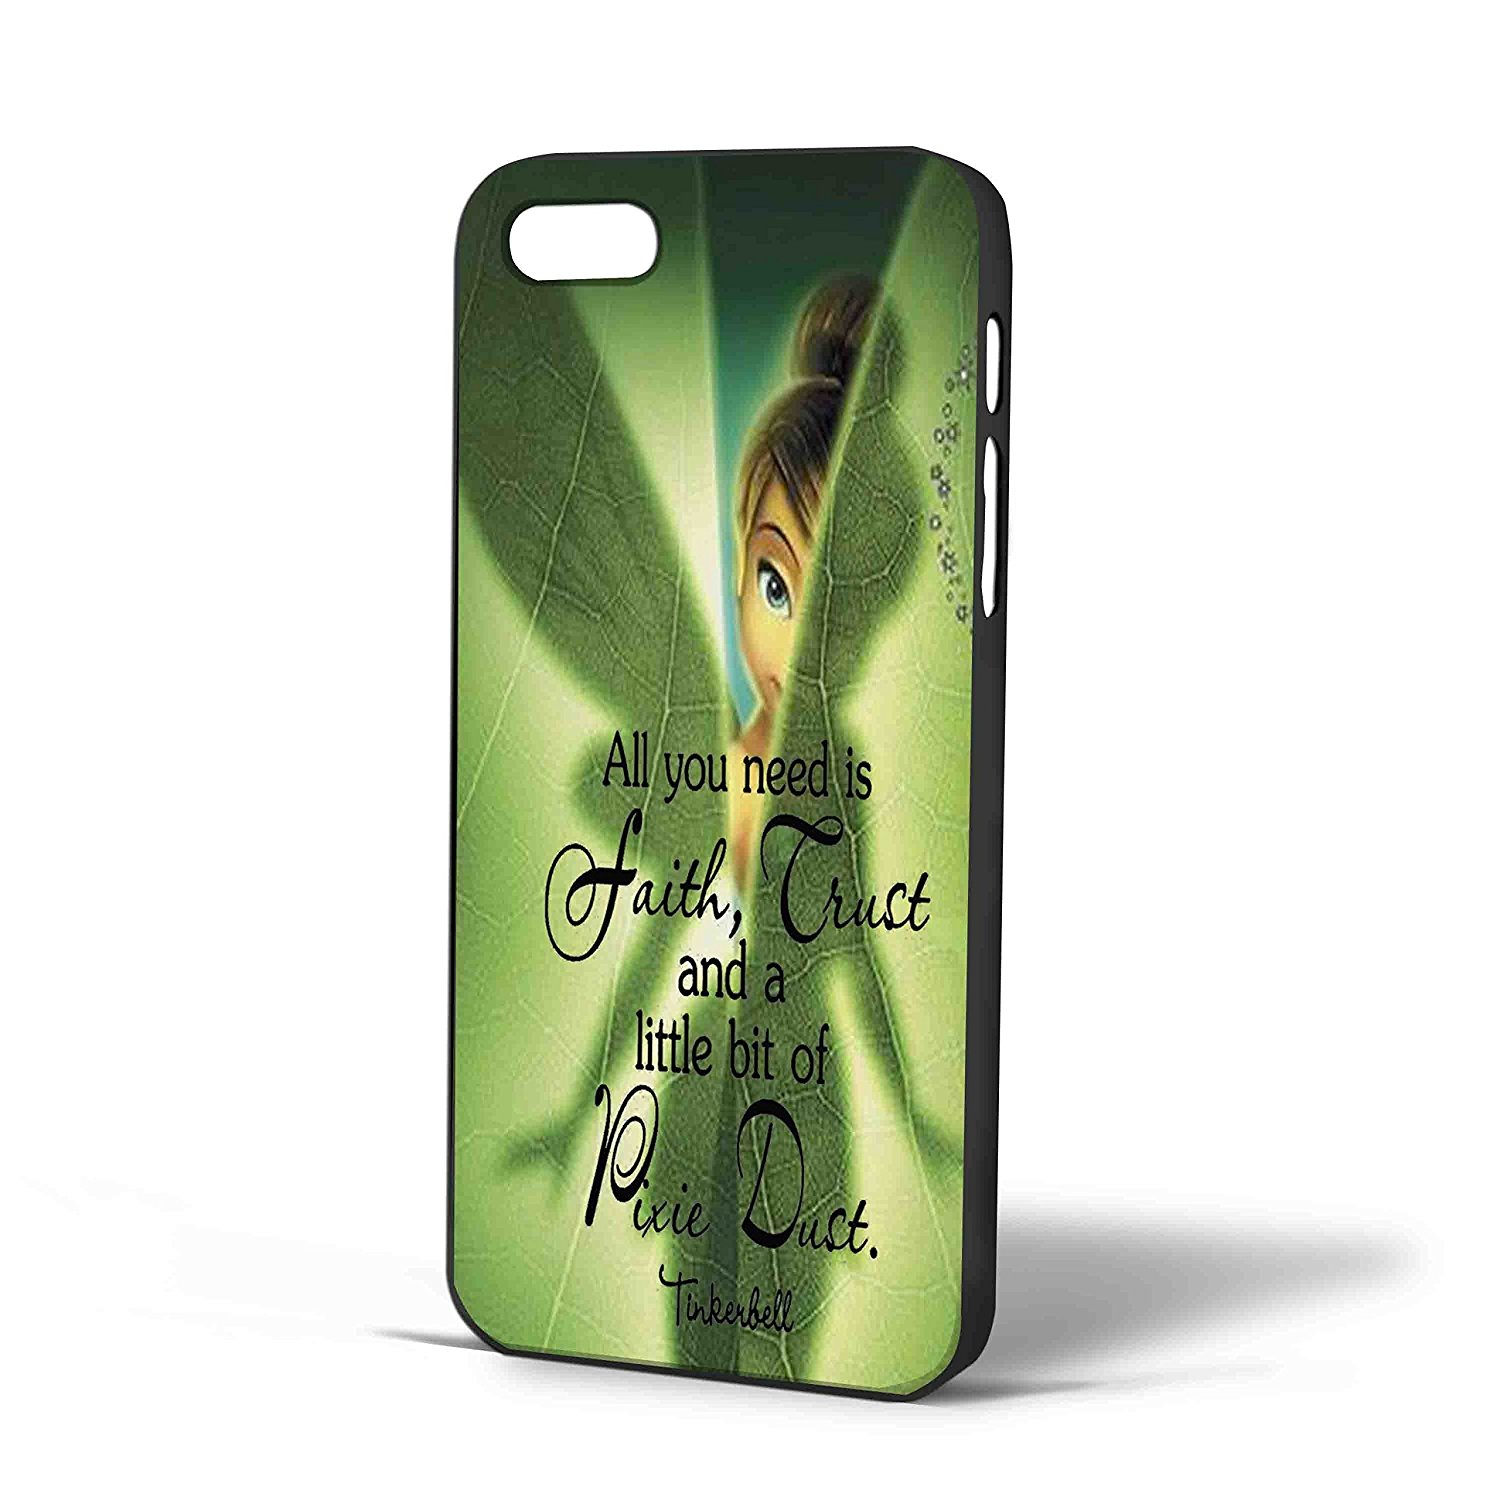 Ganma tinkerbell hide in the leaf Case For iPhone Case ( Case For iPhone 6 plus White)